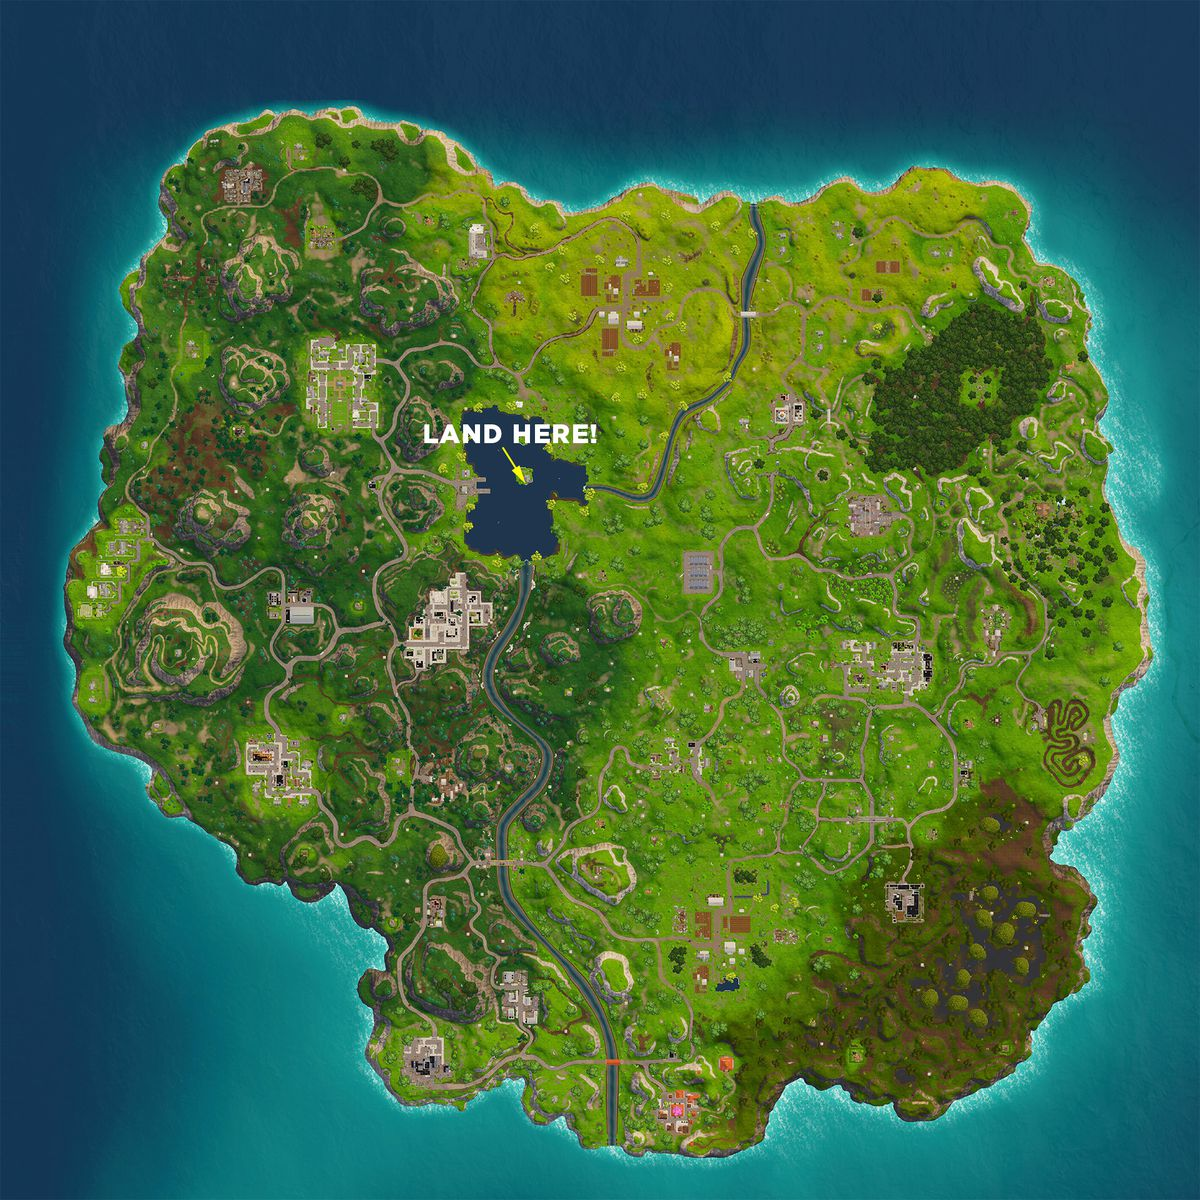 fortnite battle royale nbsp map search between three boats nbsp - fortnite search floating lighting bolts